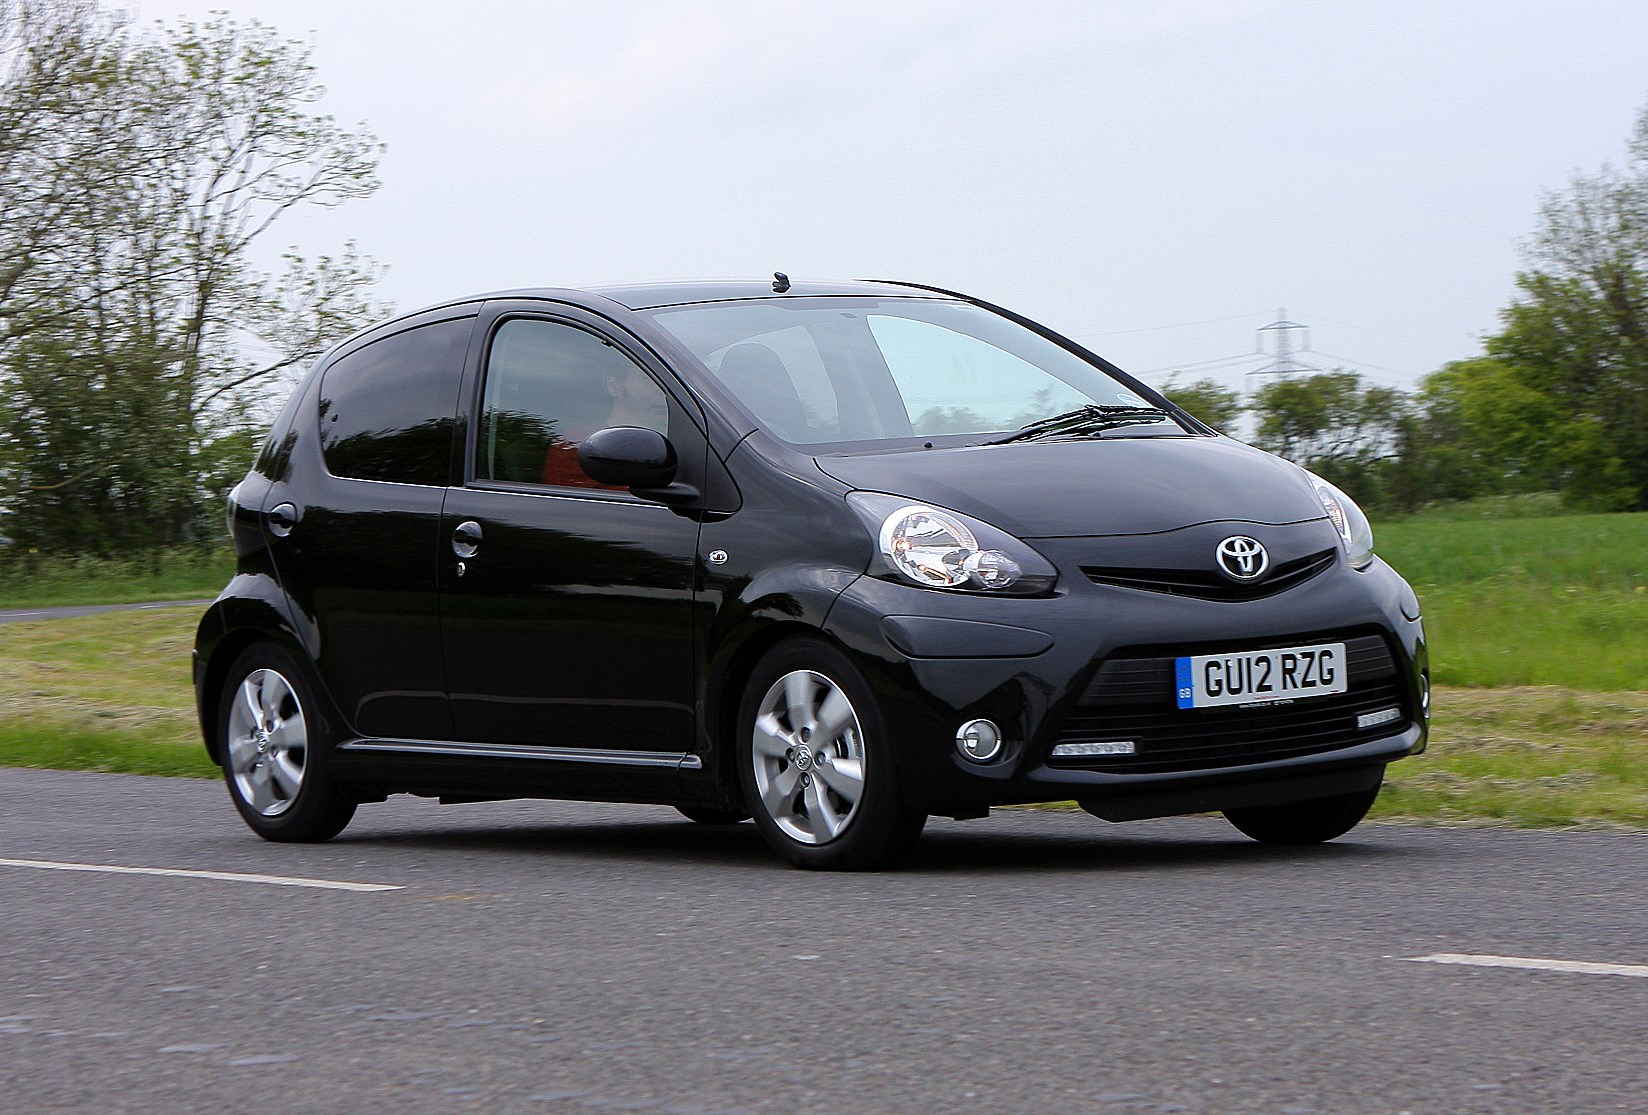 toyota aygo 2005 2014 used car buying guide review parkers. Black Bedroom Furniture Sets. Home Design Ideas